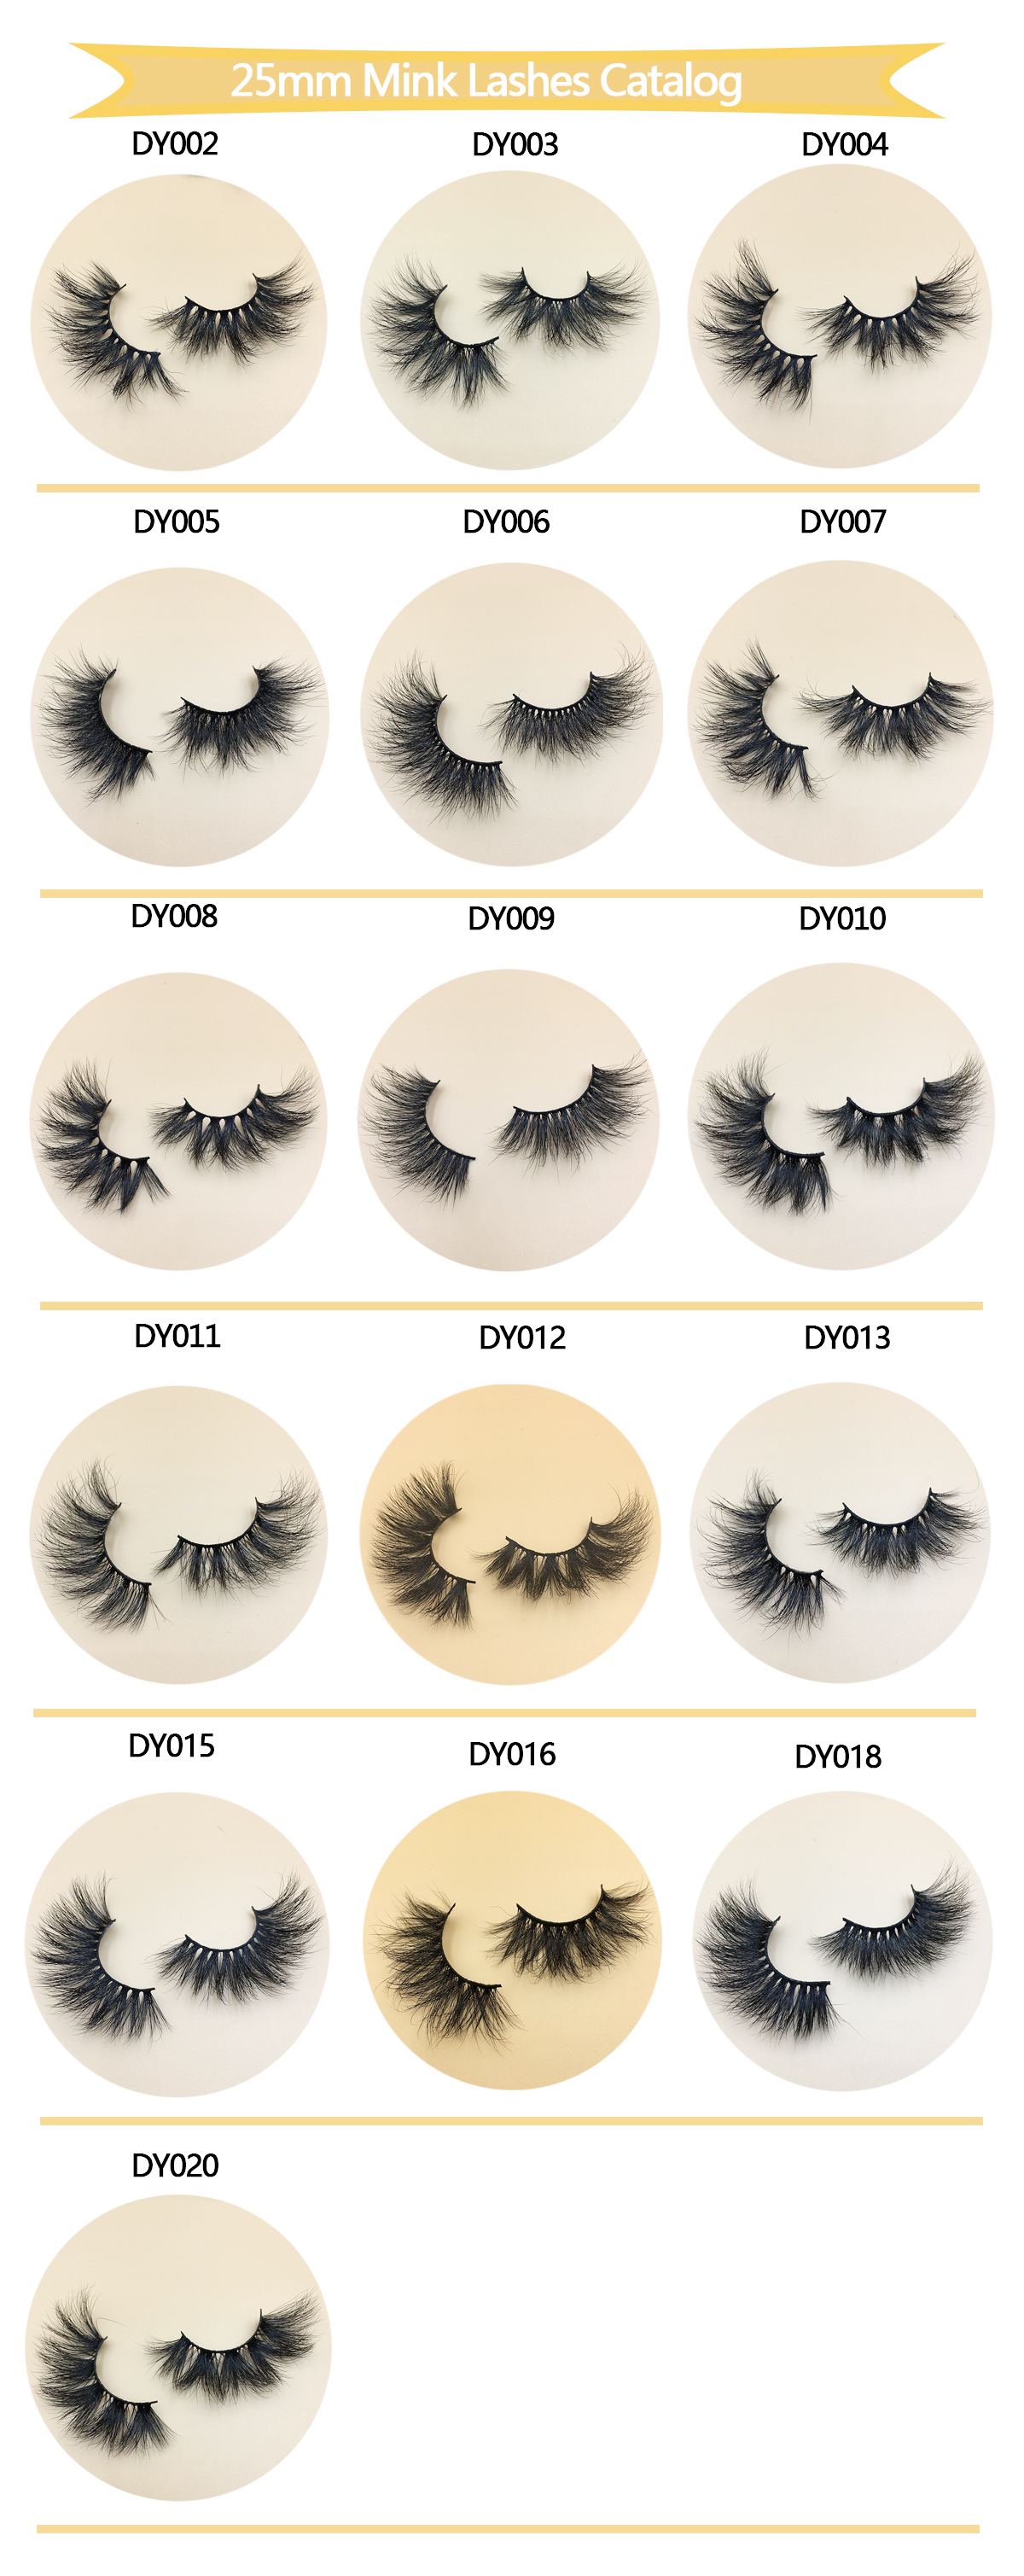 New DY Serise 25mm Mink Lashes 2